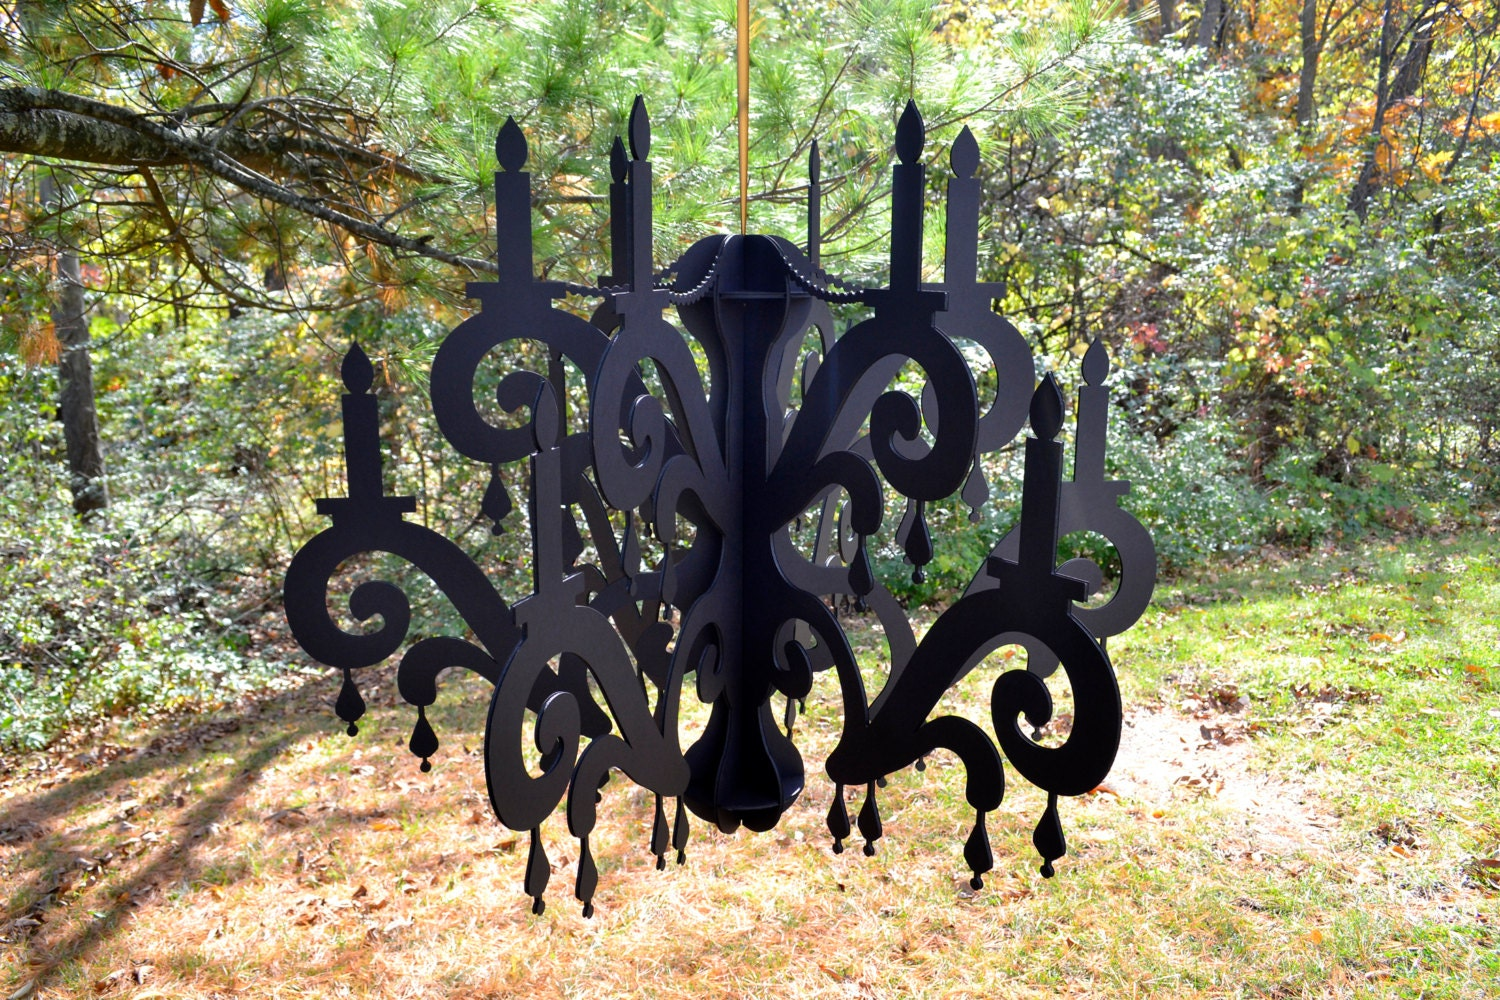 Xxl chandelier black home party decor for Decoration xxl